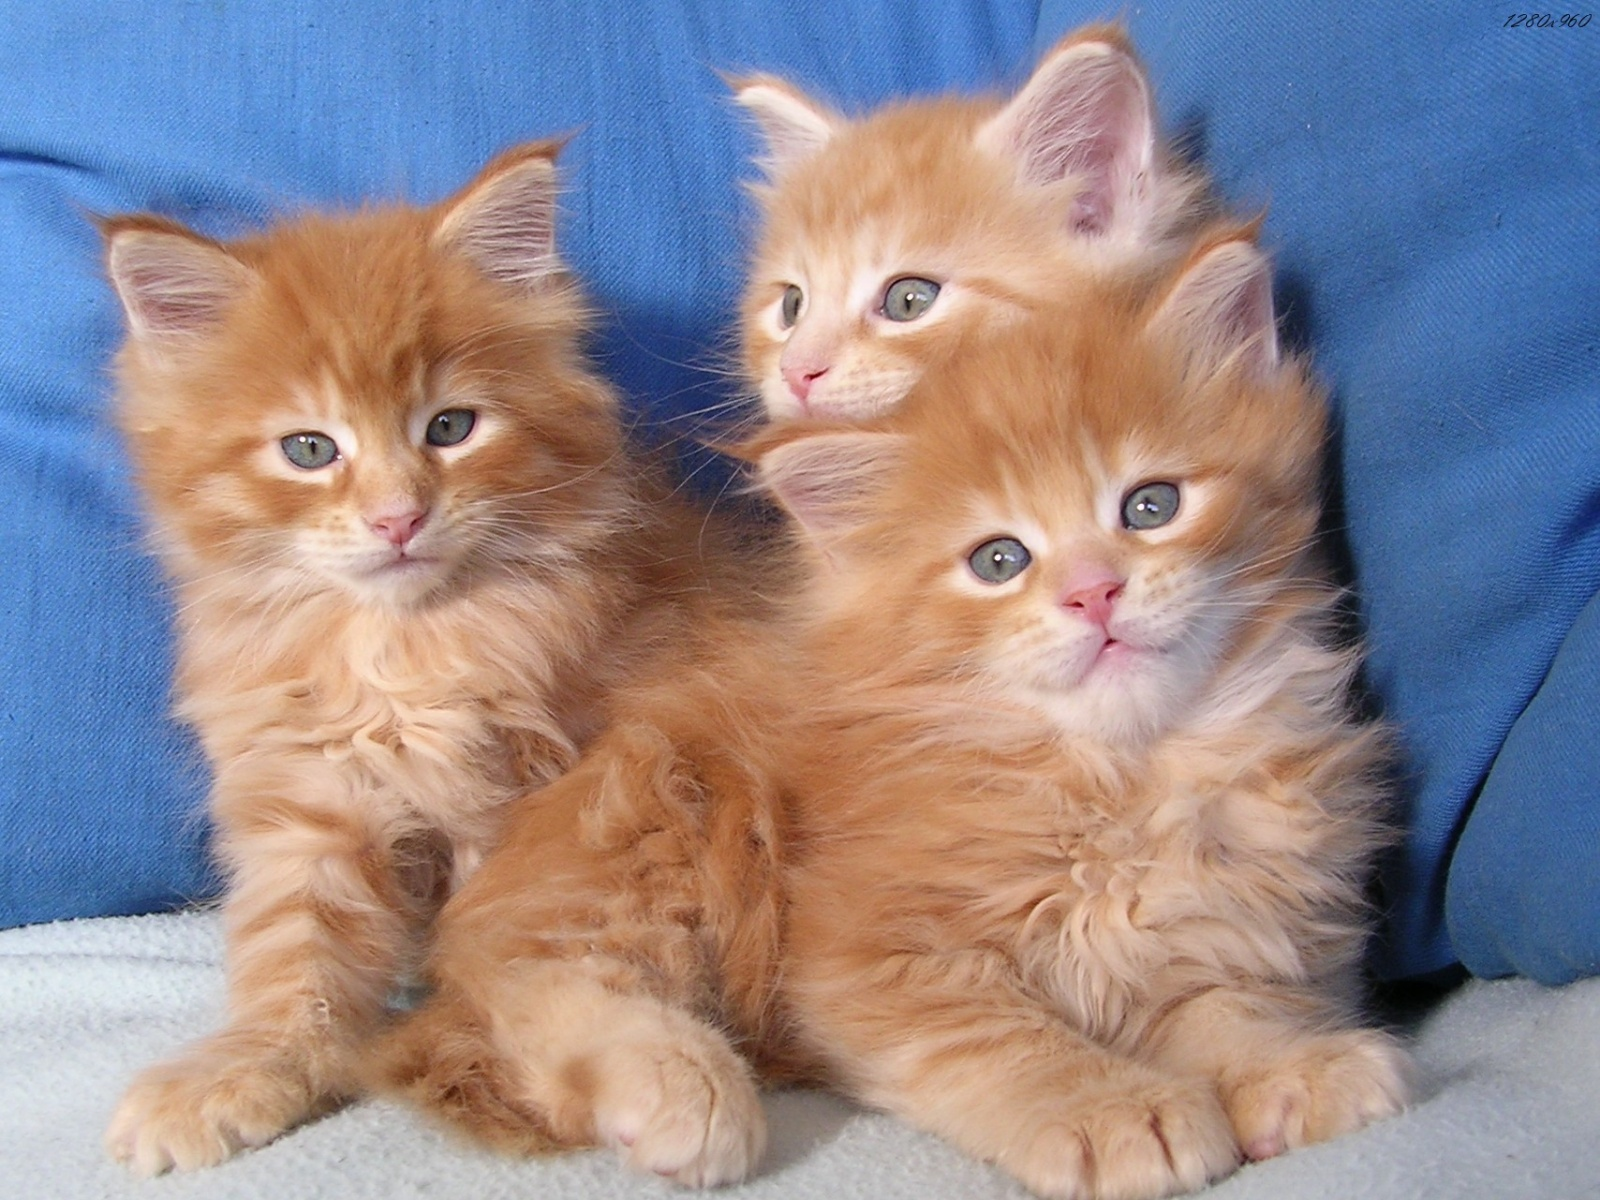 Chaton Roux A Donner Nos Amis Les Animaux